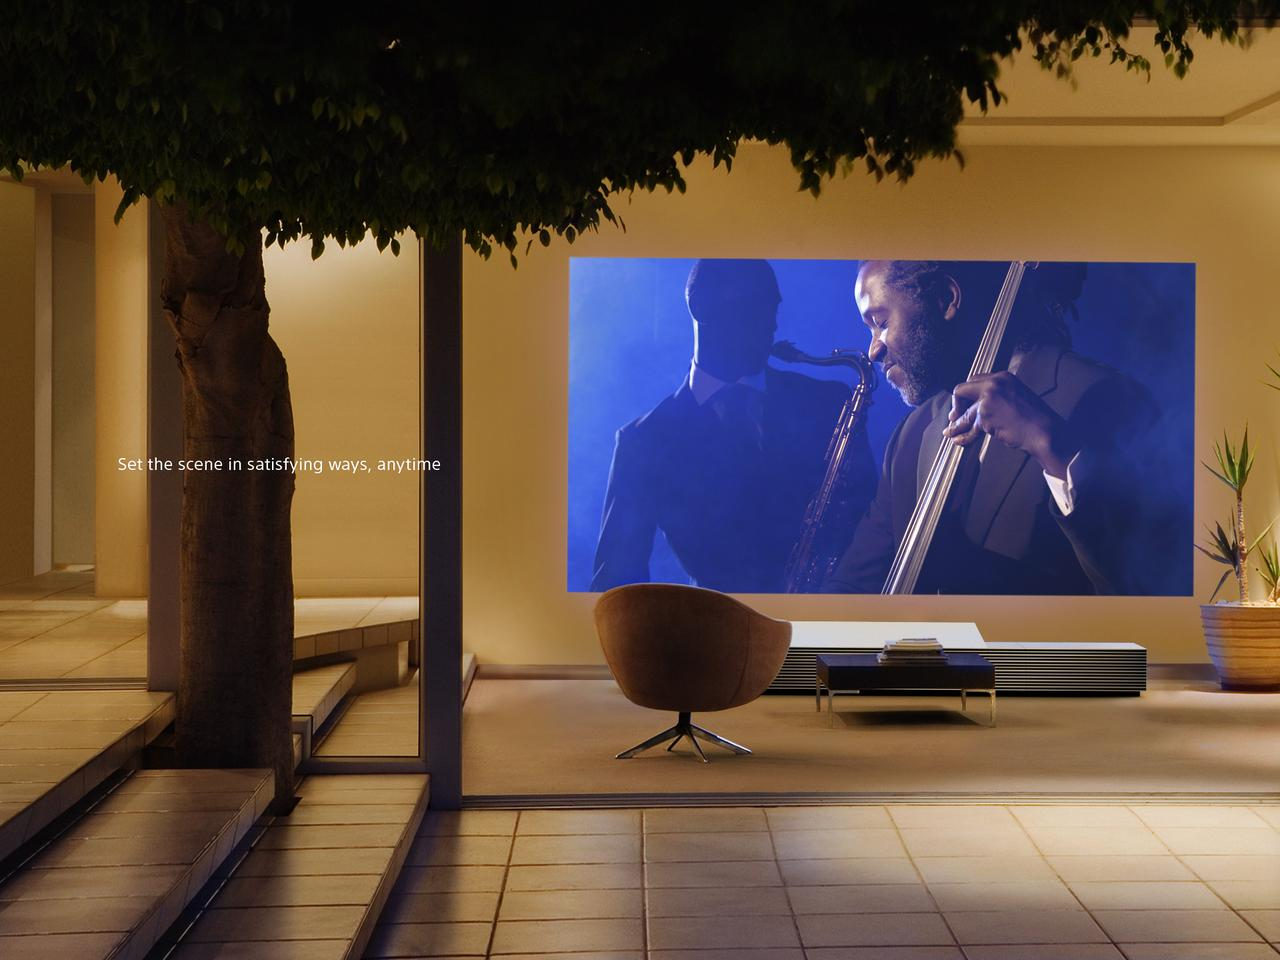 The Sony 4K Ultra Short Throw Projector will be available mid-2014